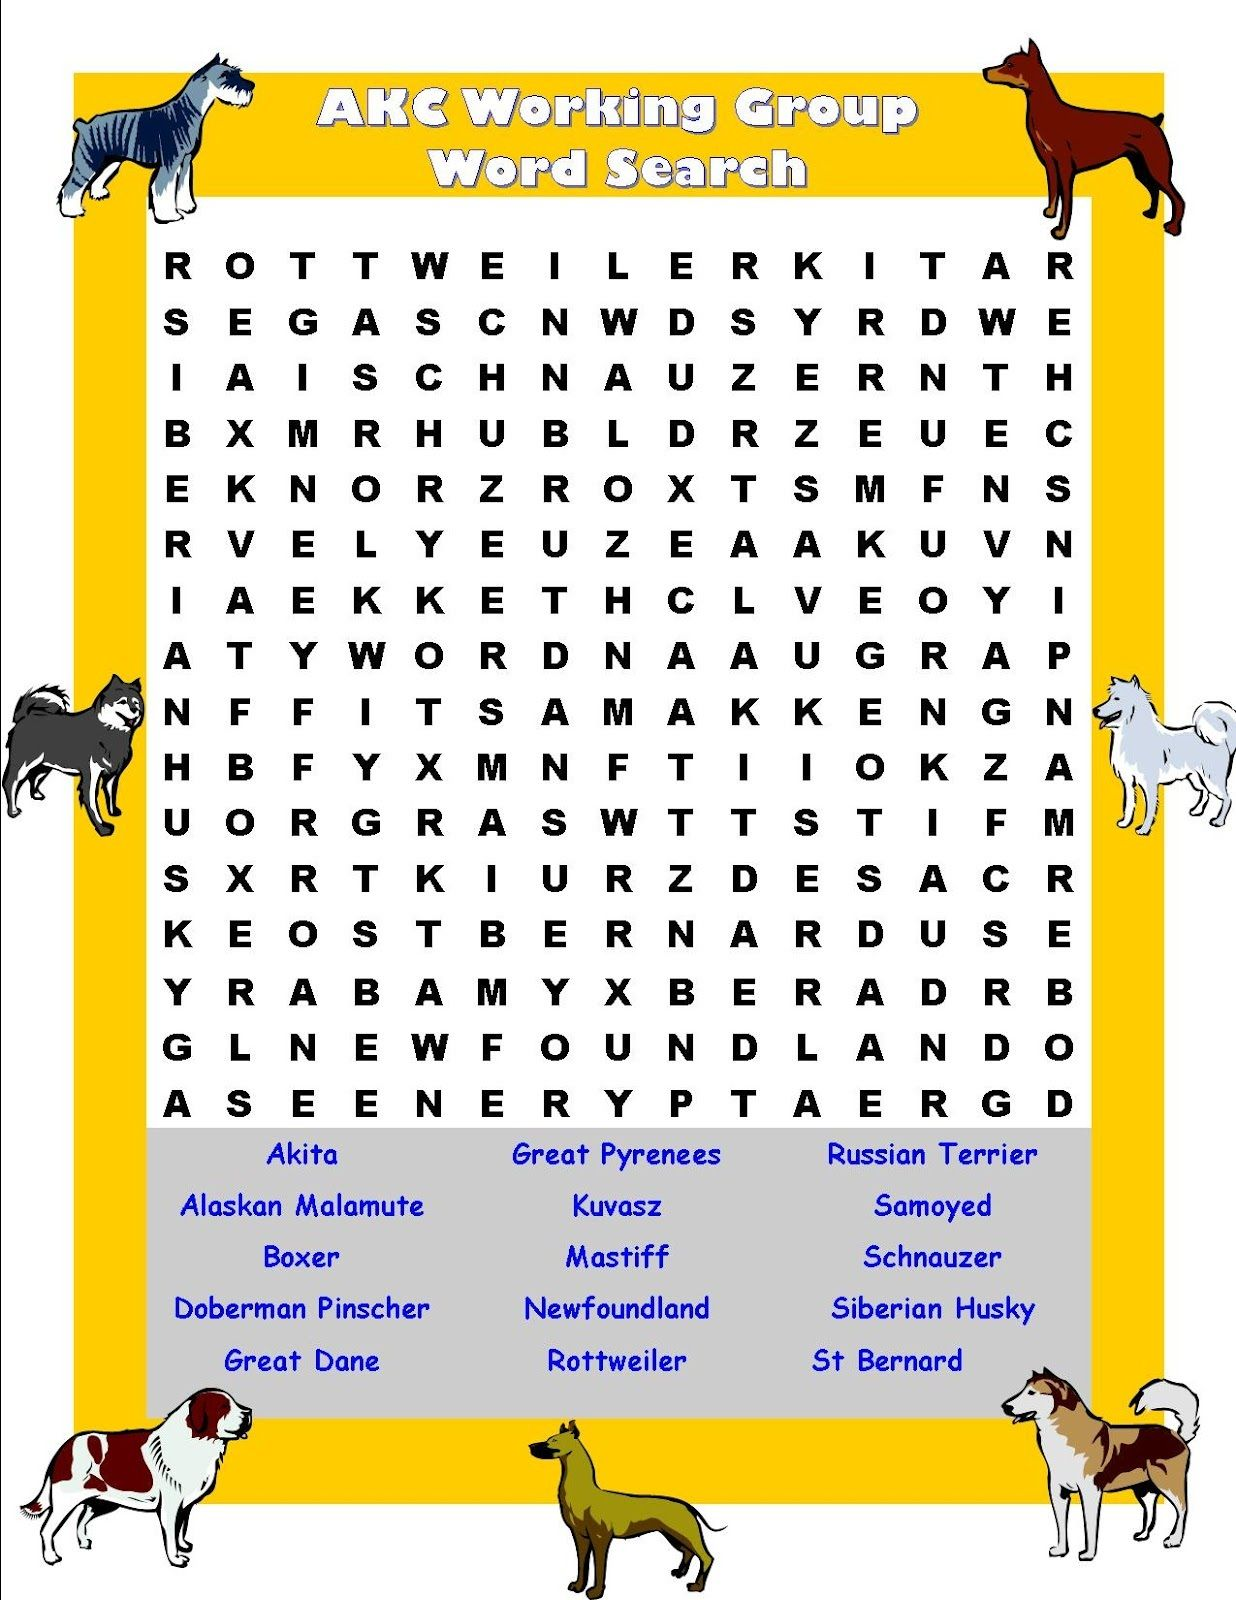 Akc Working Group Word Search For Dog Lovers